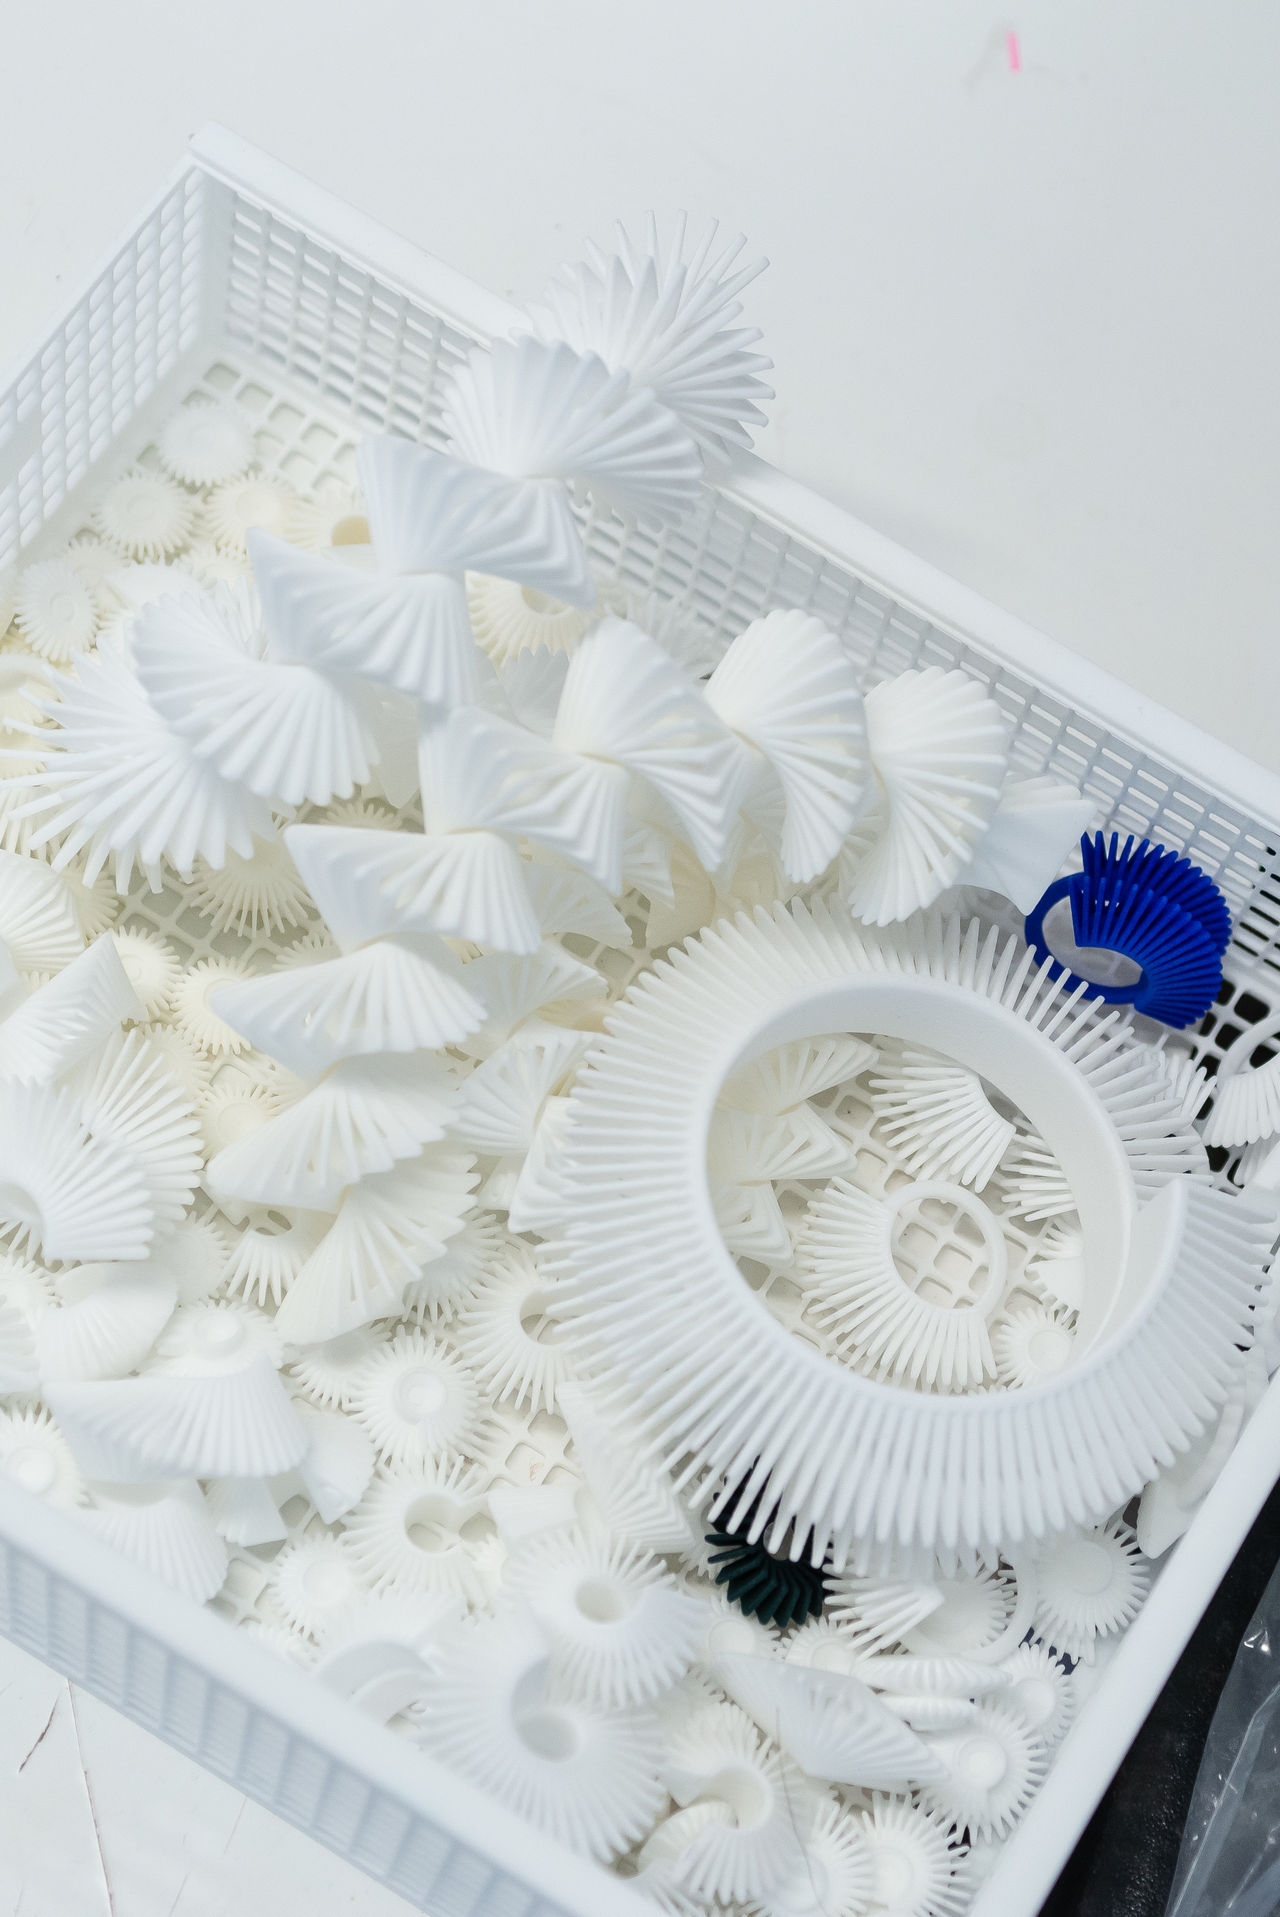 A box of white plastic geometric jewellery, all different shapes and sizes.